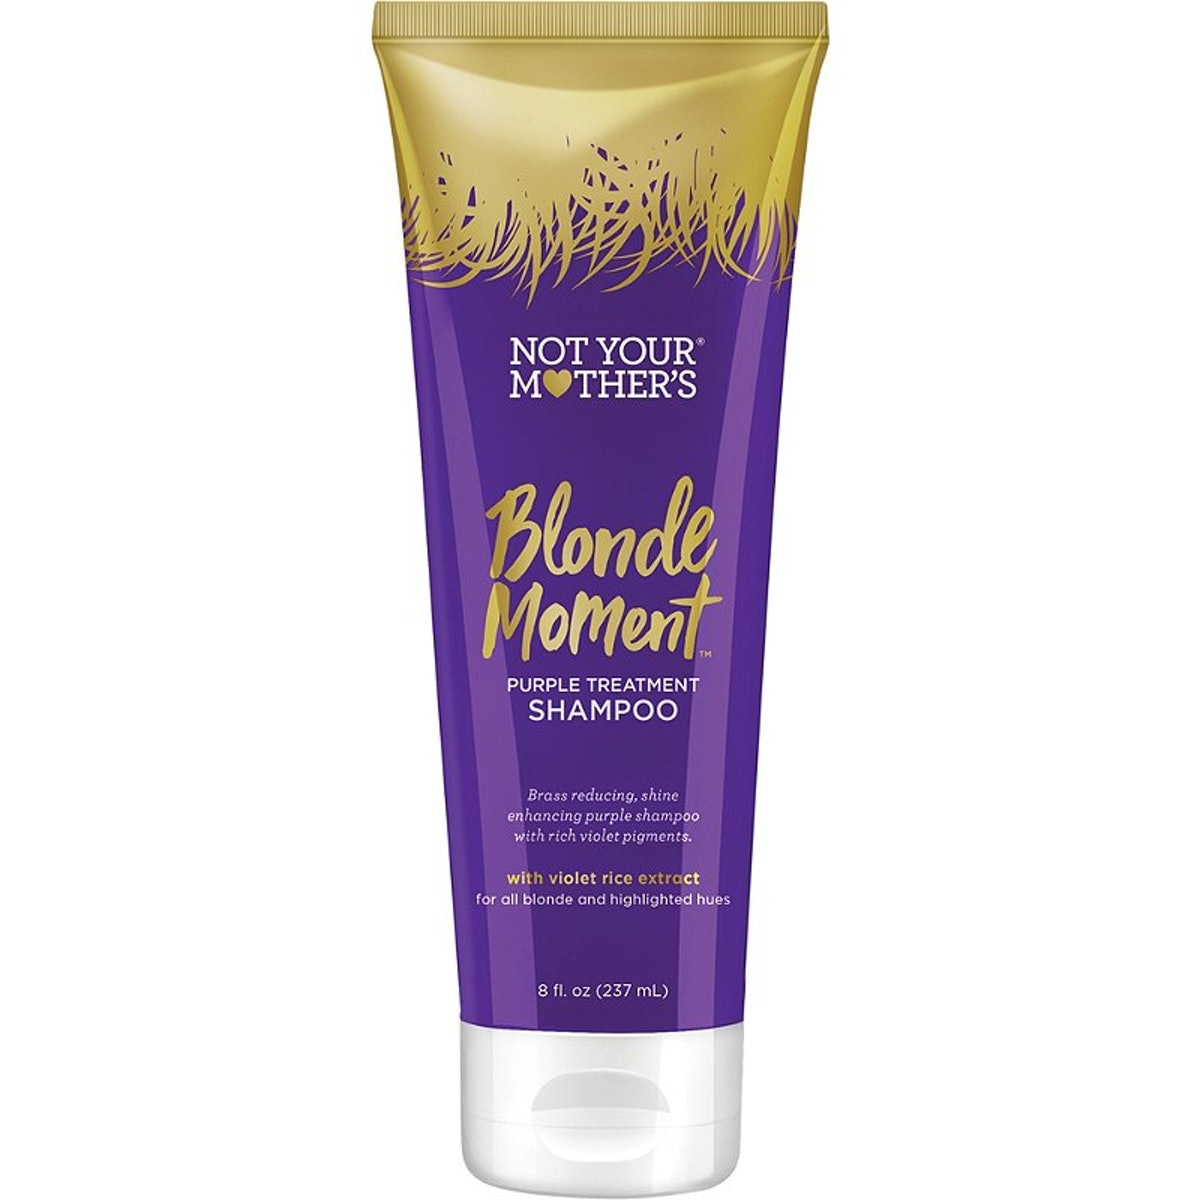 Not Your Mother's Blonde Moment Purple Treatment Shampoo